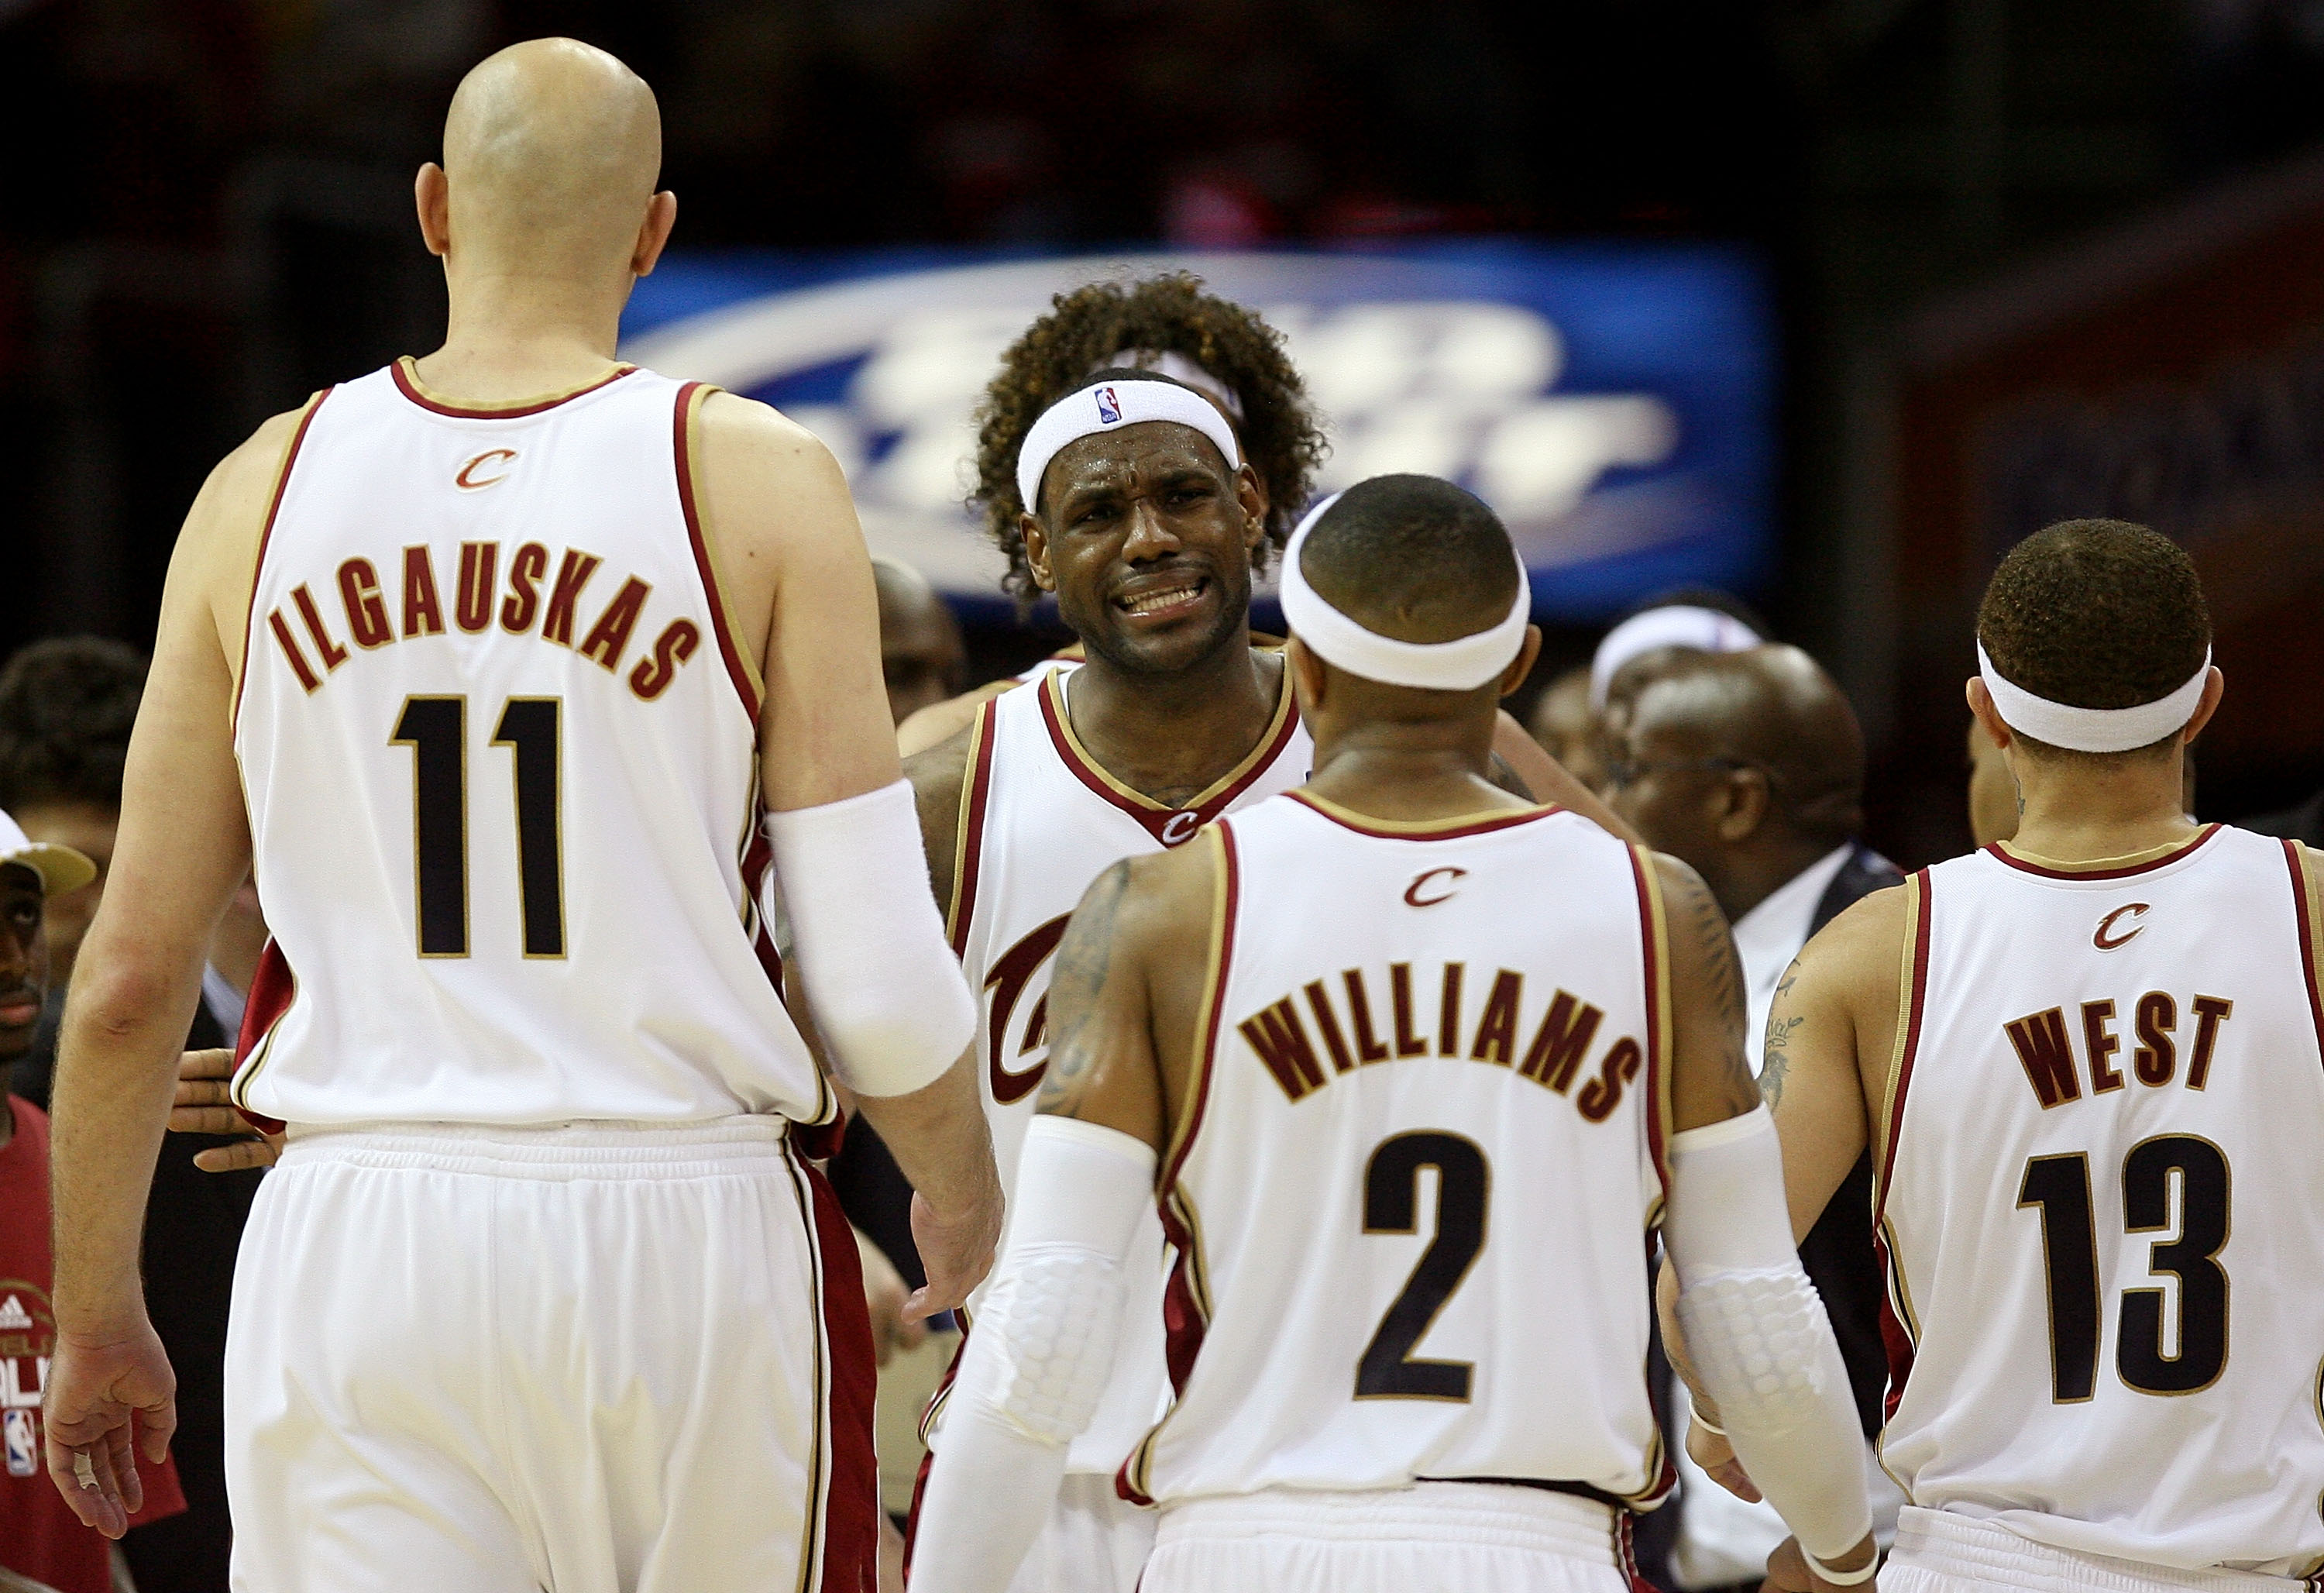 87a74819addd The 50 Greatest Players in Cleveland Cavaliers History. 0 of 50. CLEVELAND  - MAY 20  LeBron James  23 reacts after a play with teammates Zydrunas